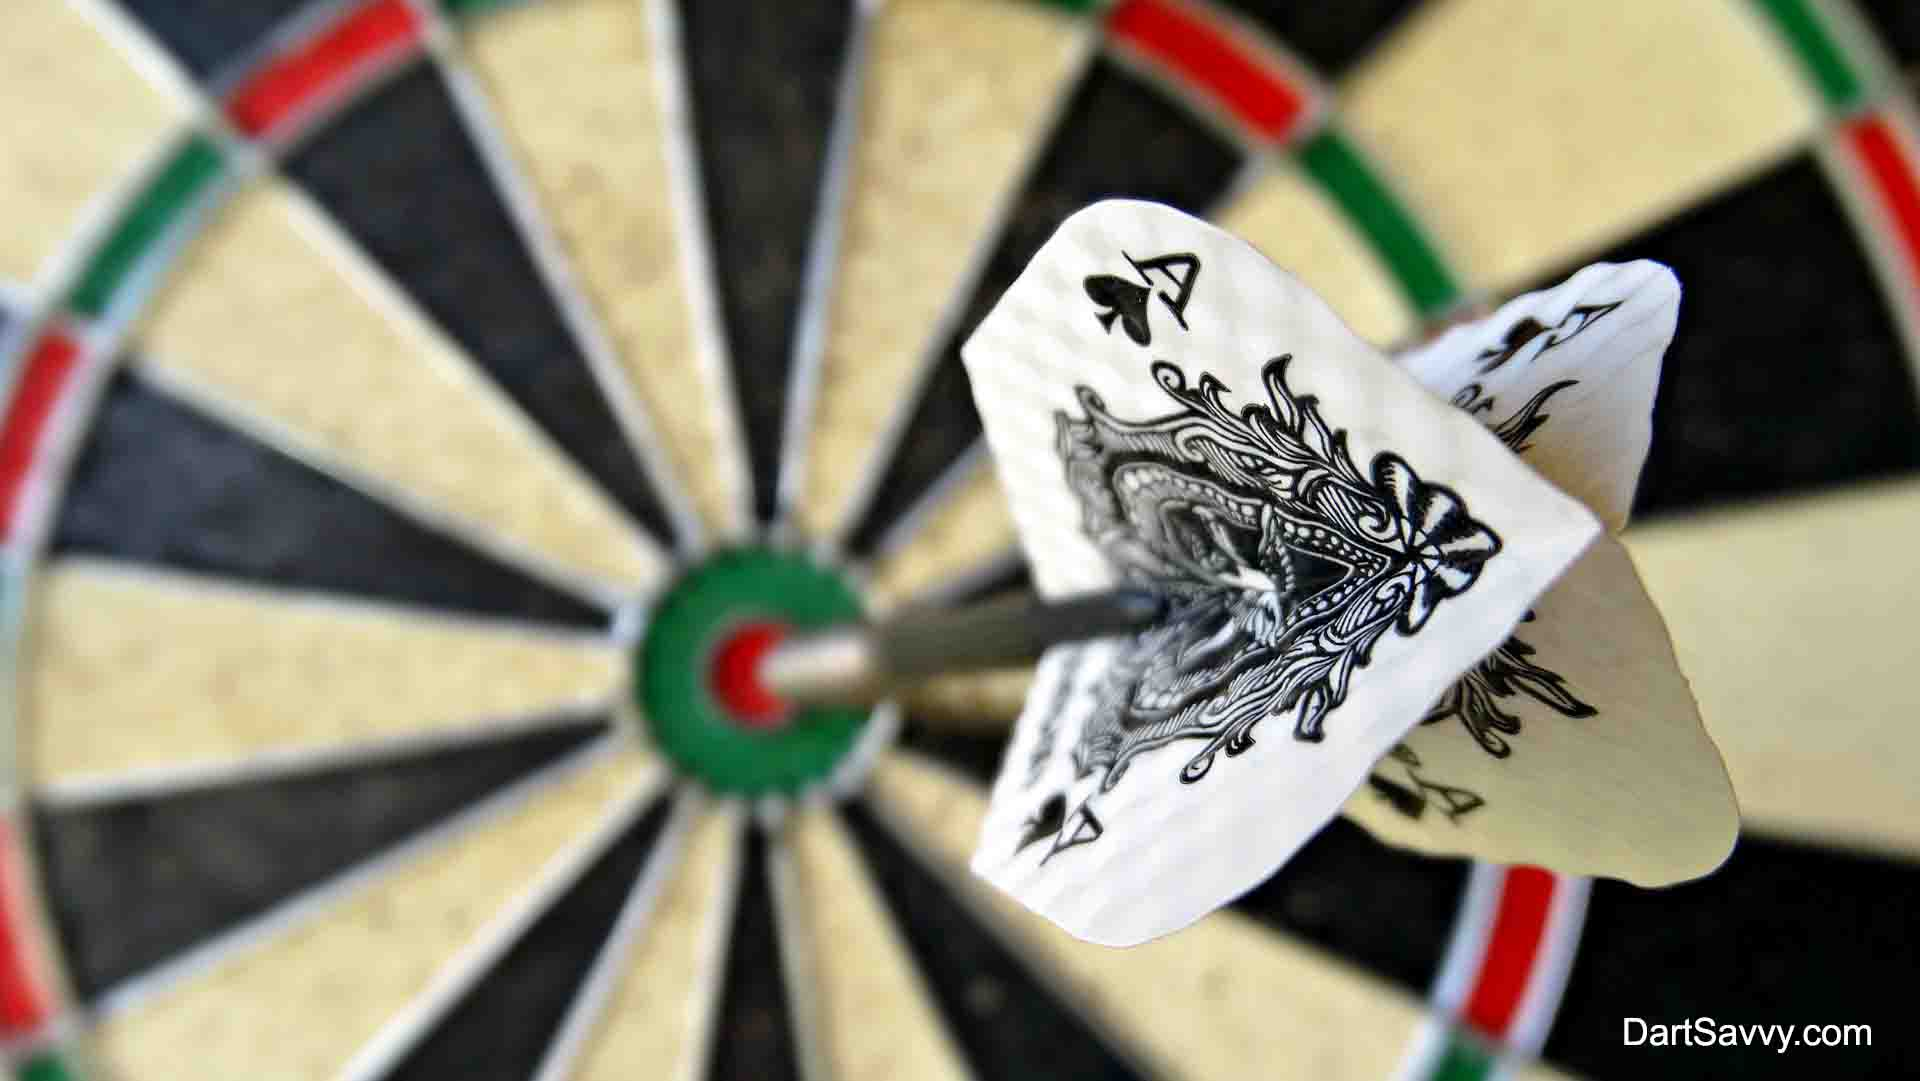 Best Soft tip darts to buy in 2018